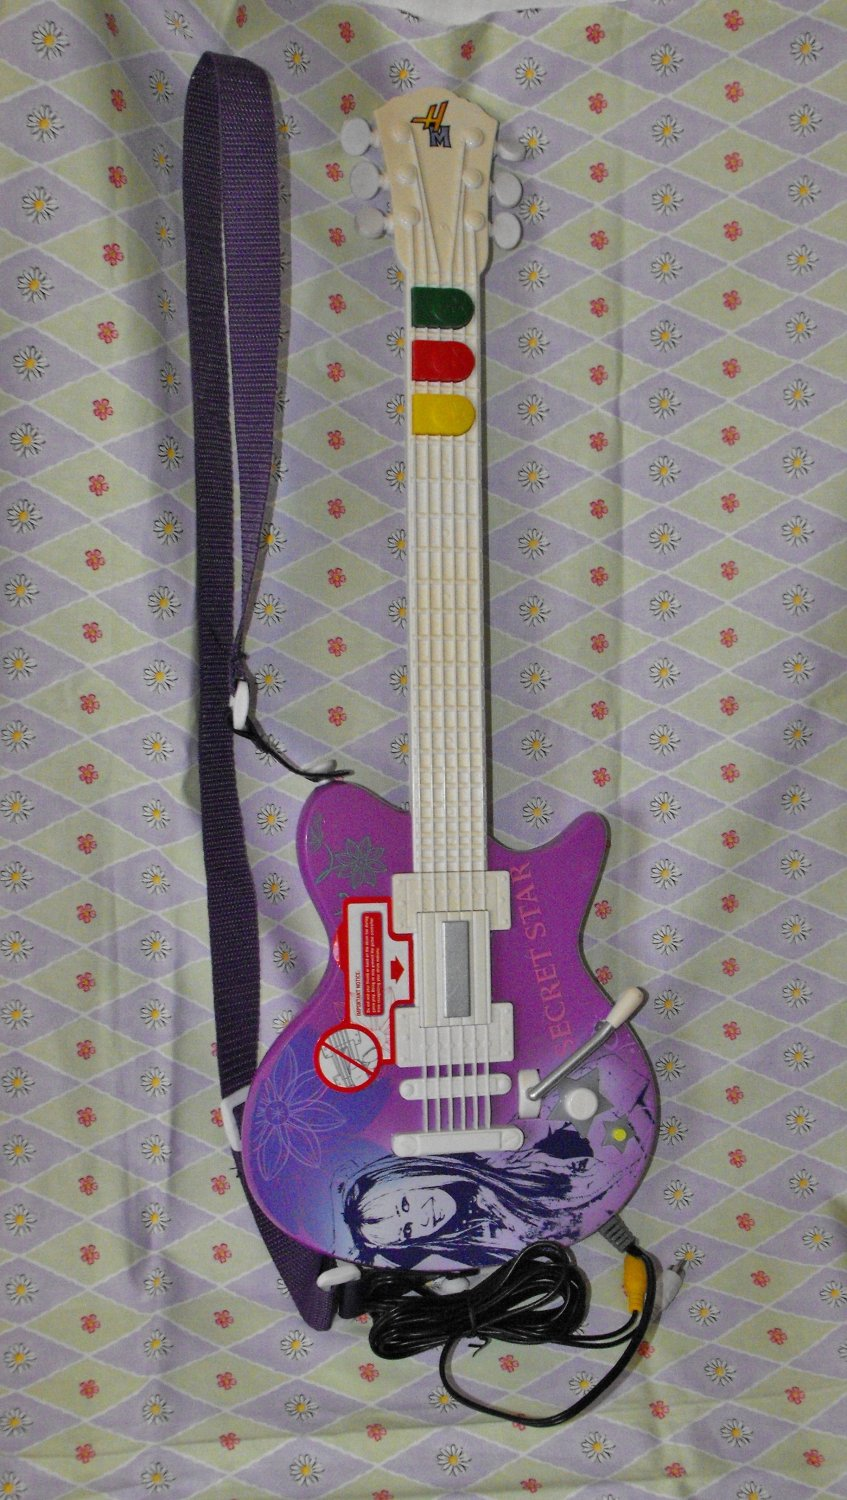 Hannah Montana Guitar Video Game for Girl Jakks Pacific G2